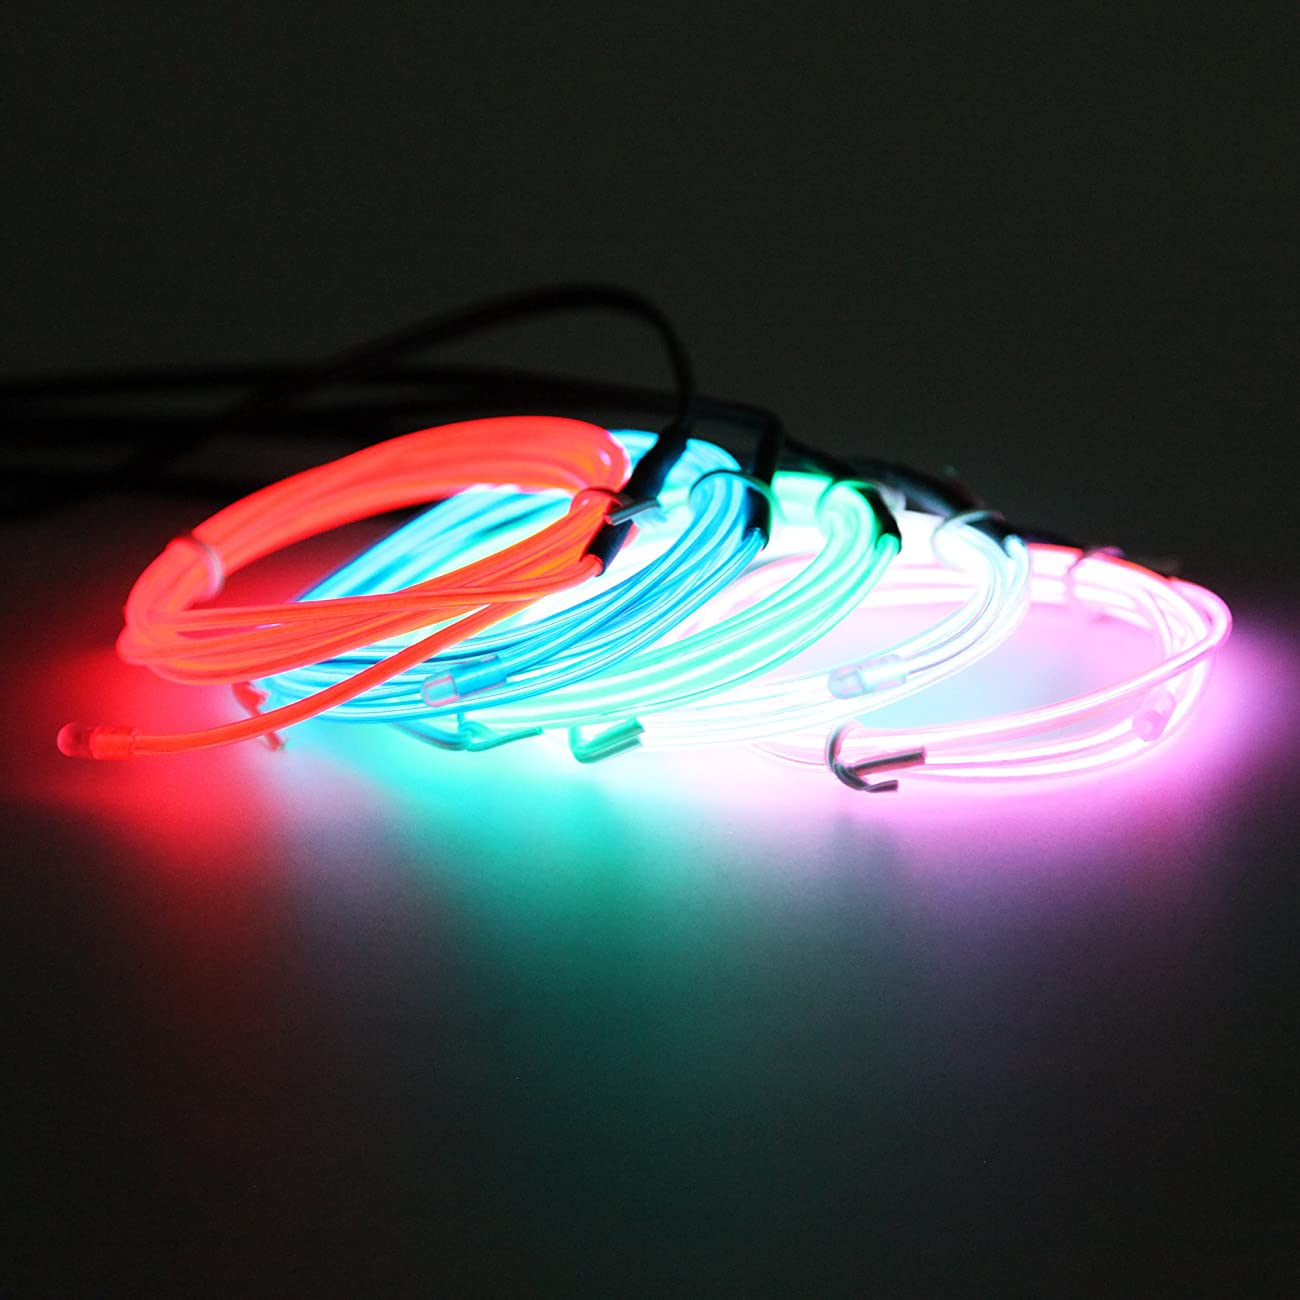 Exlight 5 X 1 Metre Neon Light El Wire- New Drive Electroluminescent Multiple Color-Set of 5(Blue, Green, Red, Pink, and White) 6